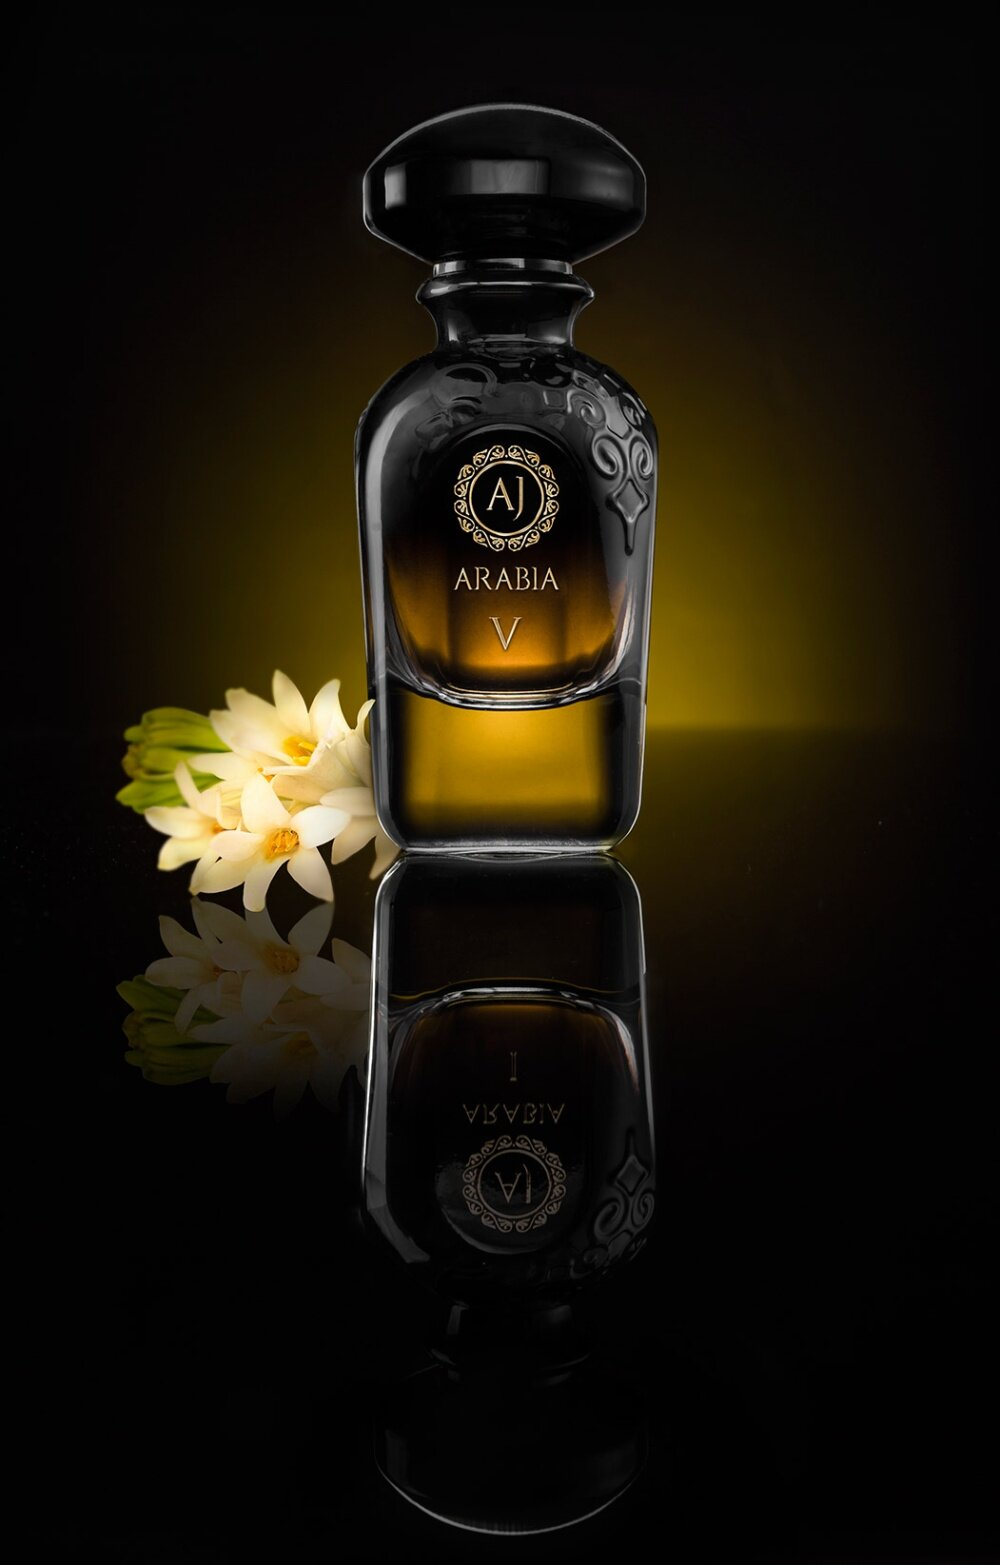 Image result for arabia private collection V perfumes